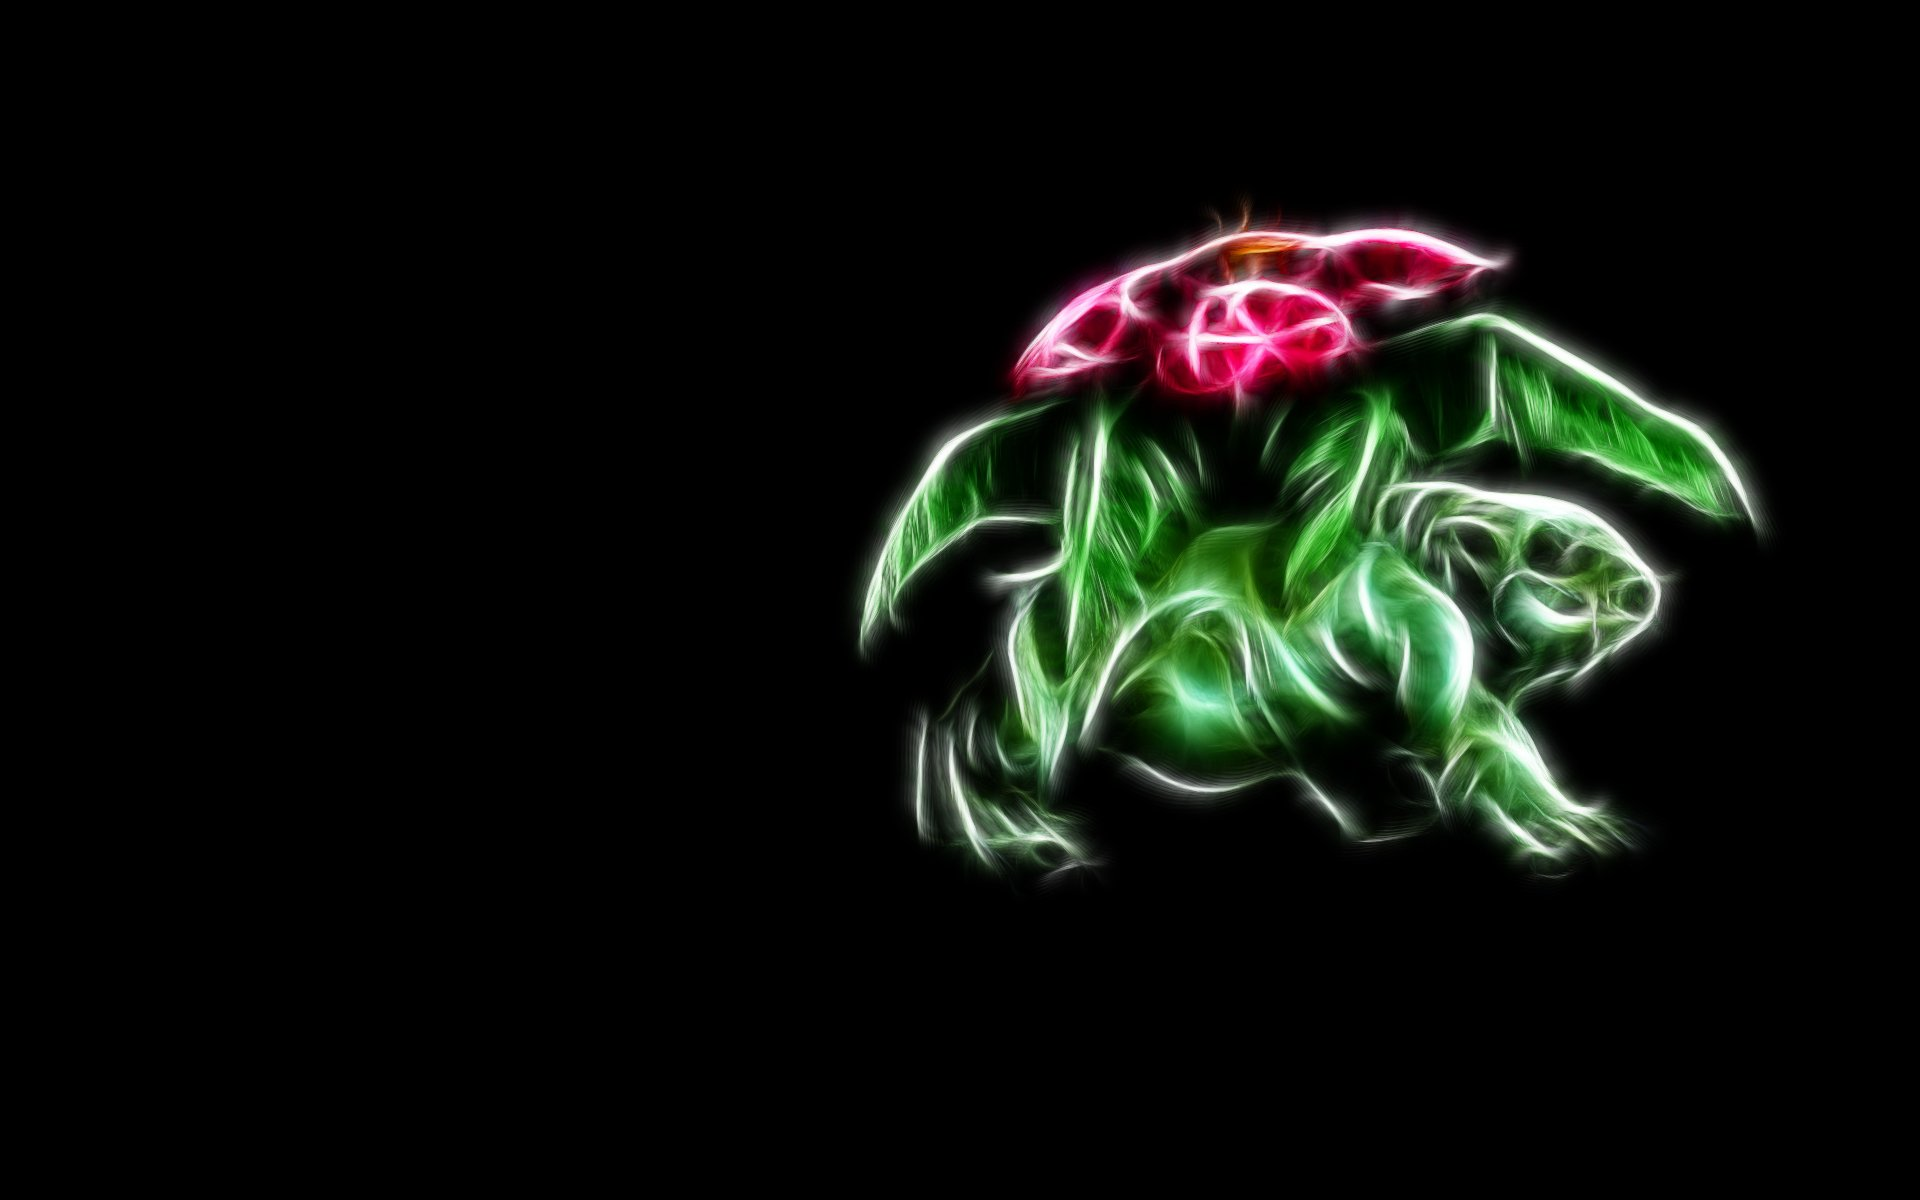 Video Game - Pokémon  Venusaur (Pokémon) Wallpaper